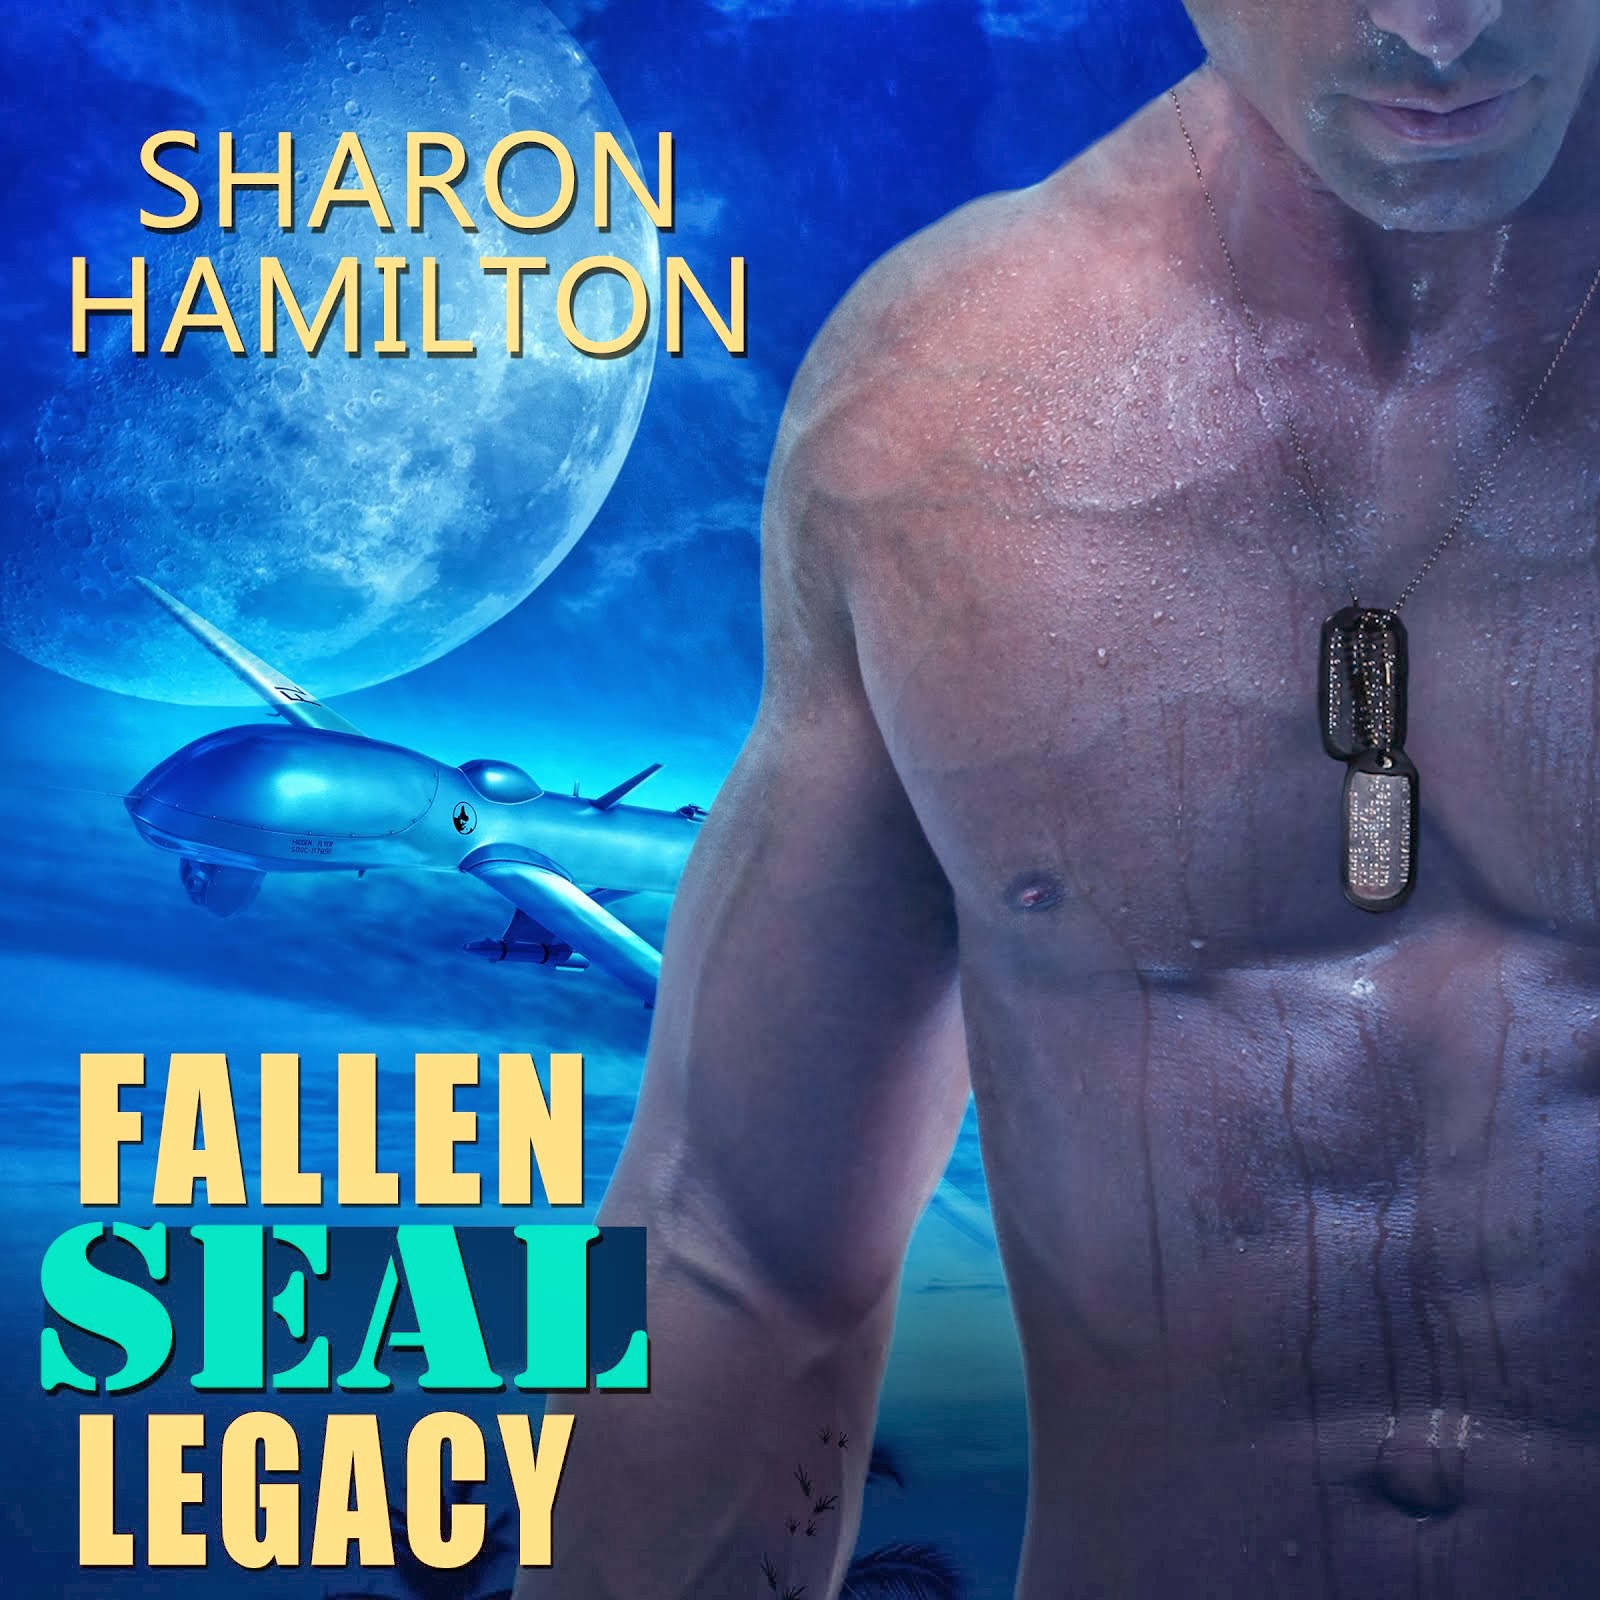 Fallen SEAL Legacy available on Audio Now!